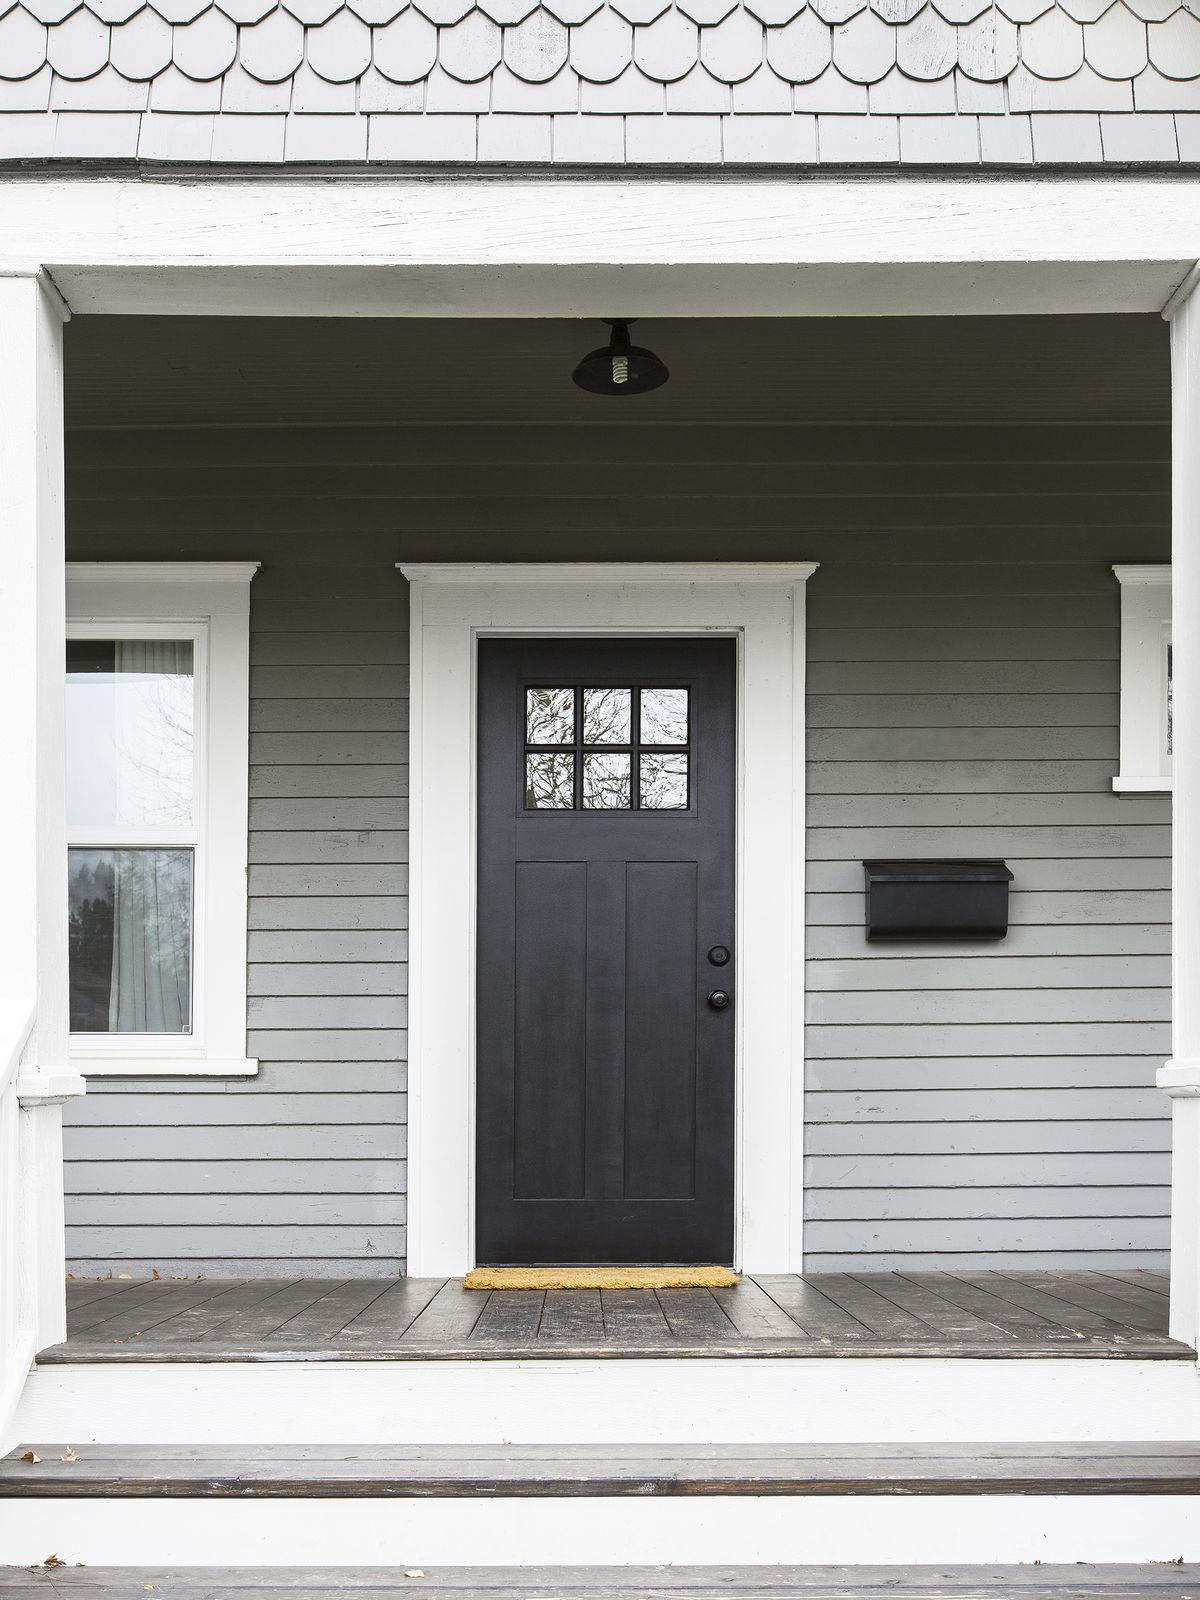 The exterior entryway of a house. The door is black and the doorway is white. The house is grey panels. The mailbox is black.